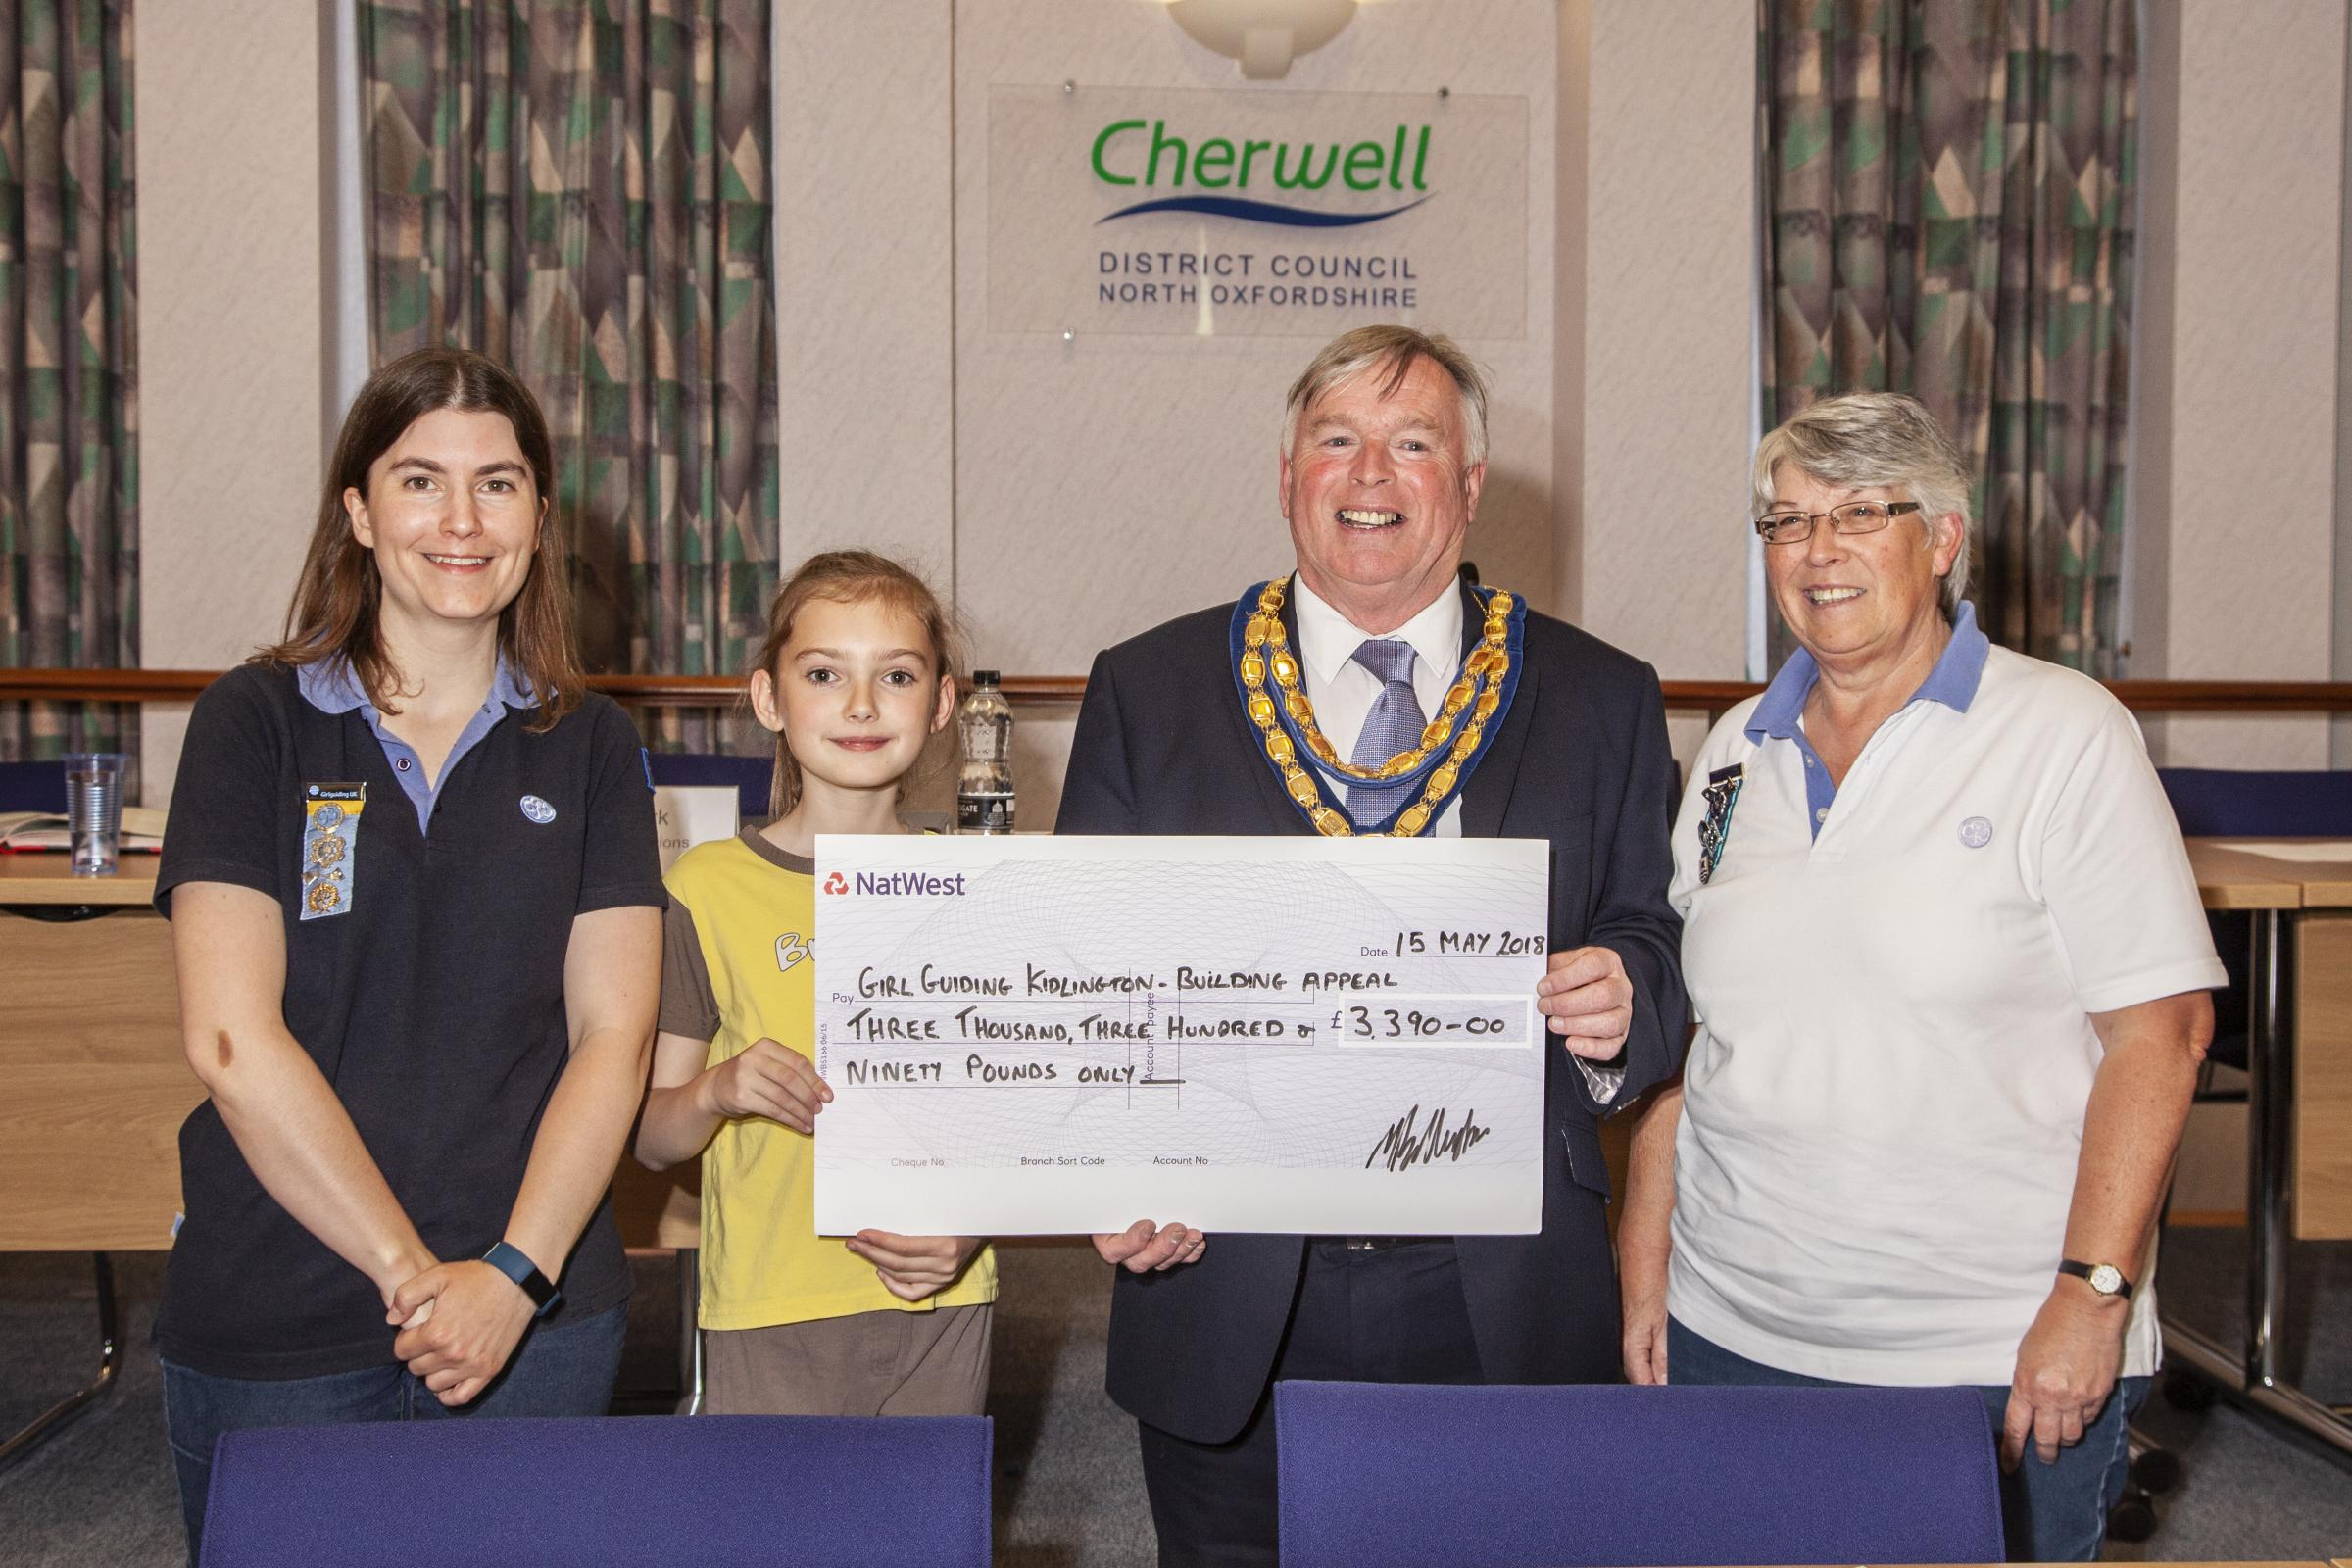 Cherwell District Council chairman handing over the share of £19,000 to Kidlington Girl Guides after raising a record-brekaing amount for charity